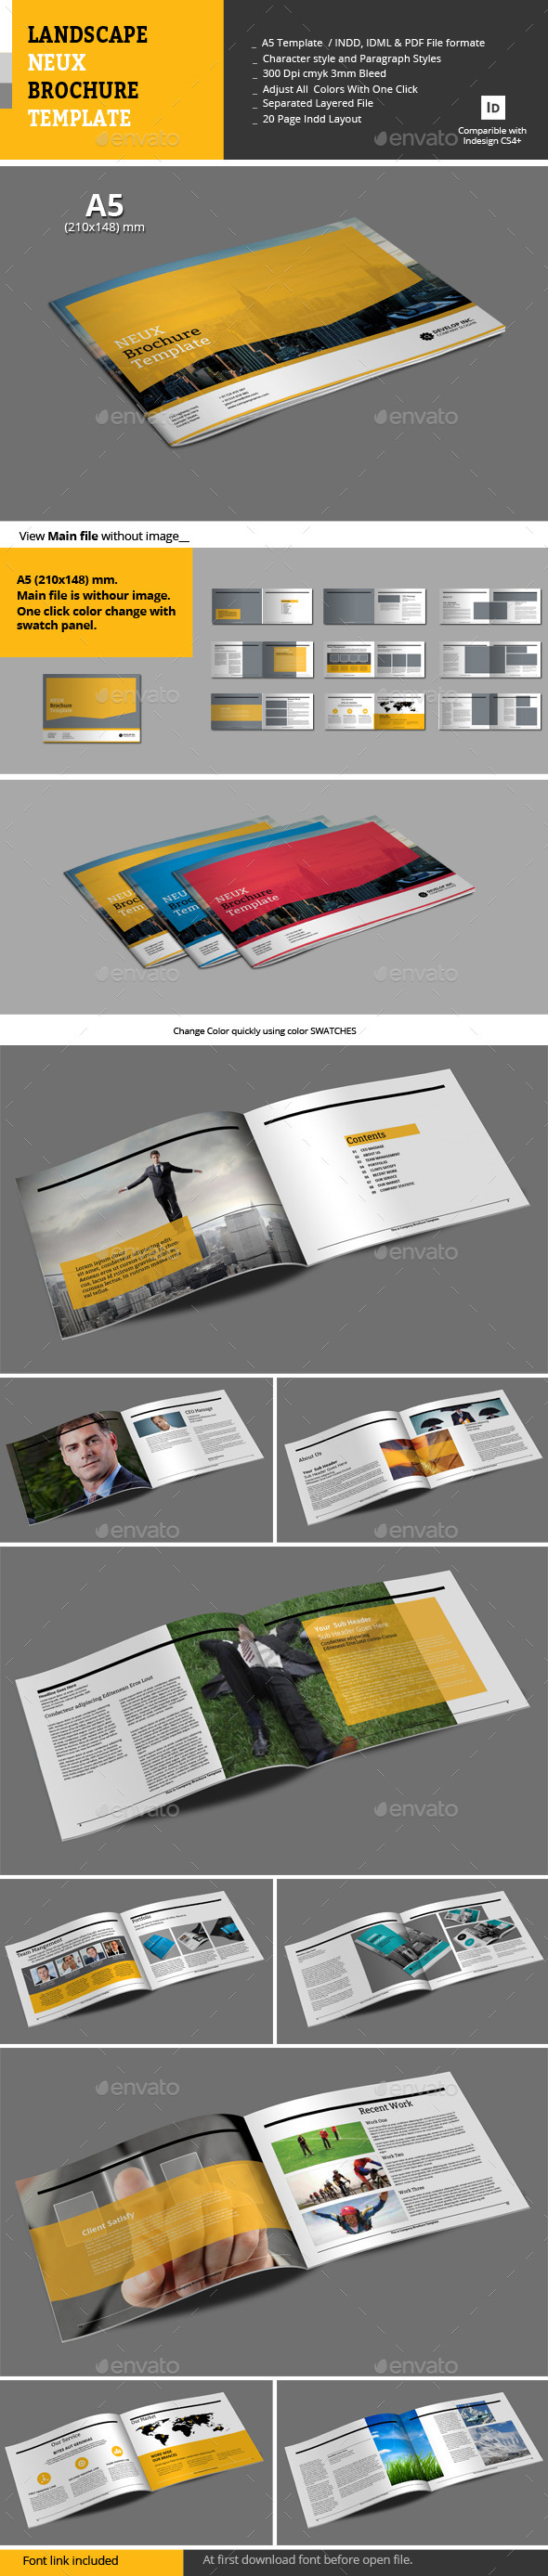 Landscape Neux Brochure Template - Corporate Brochures